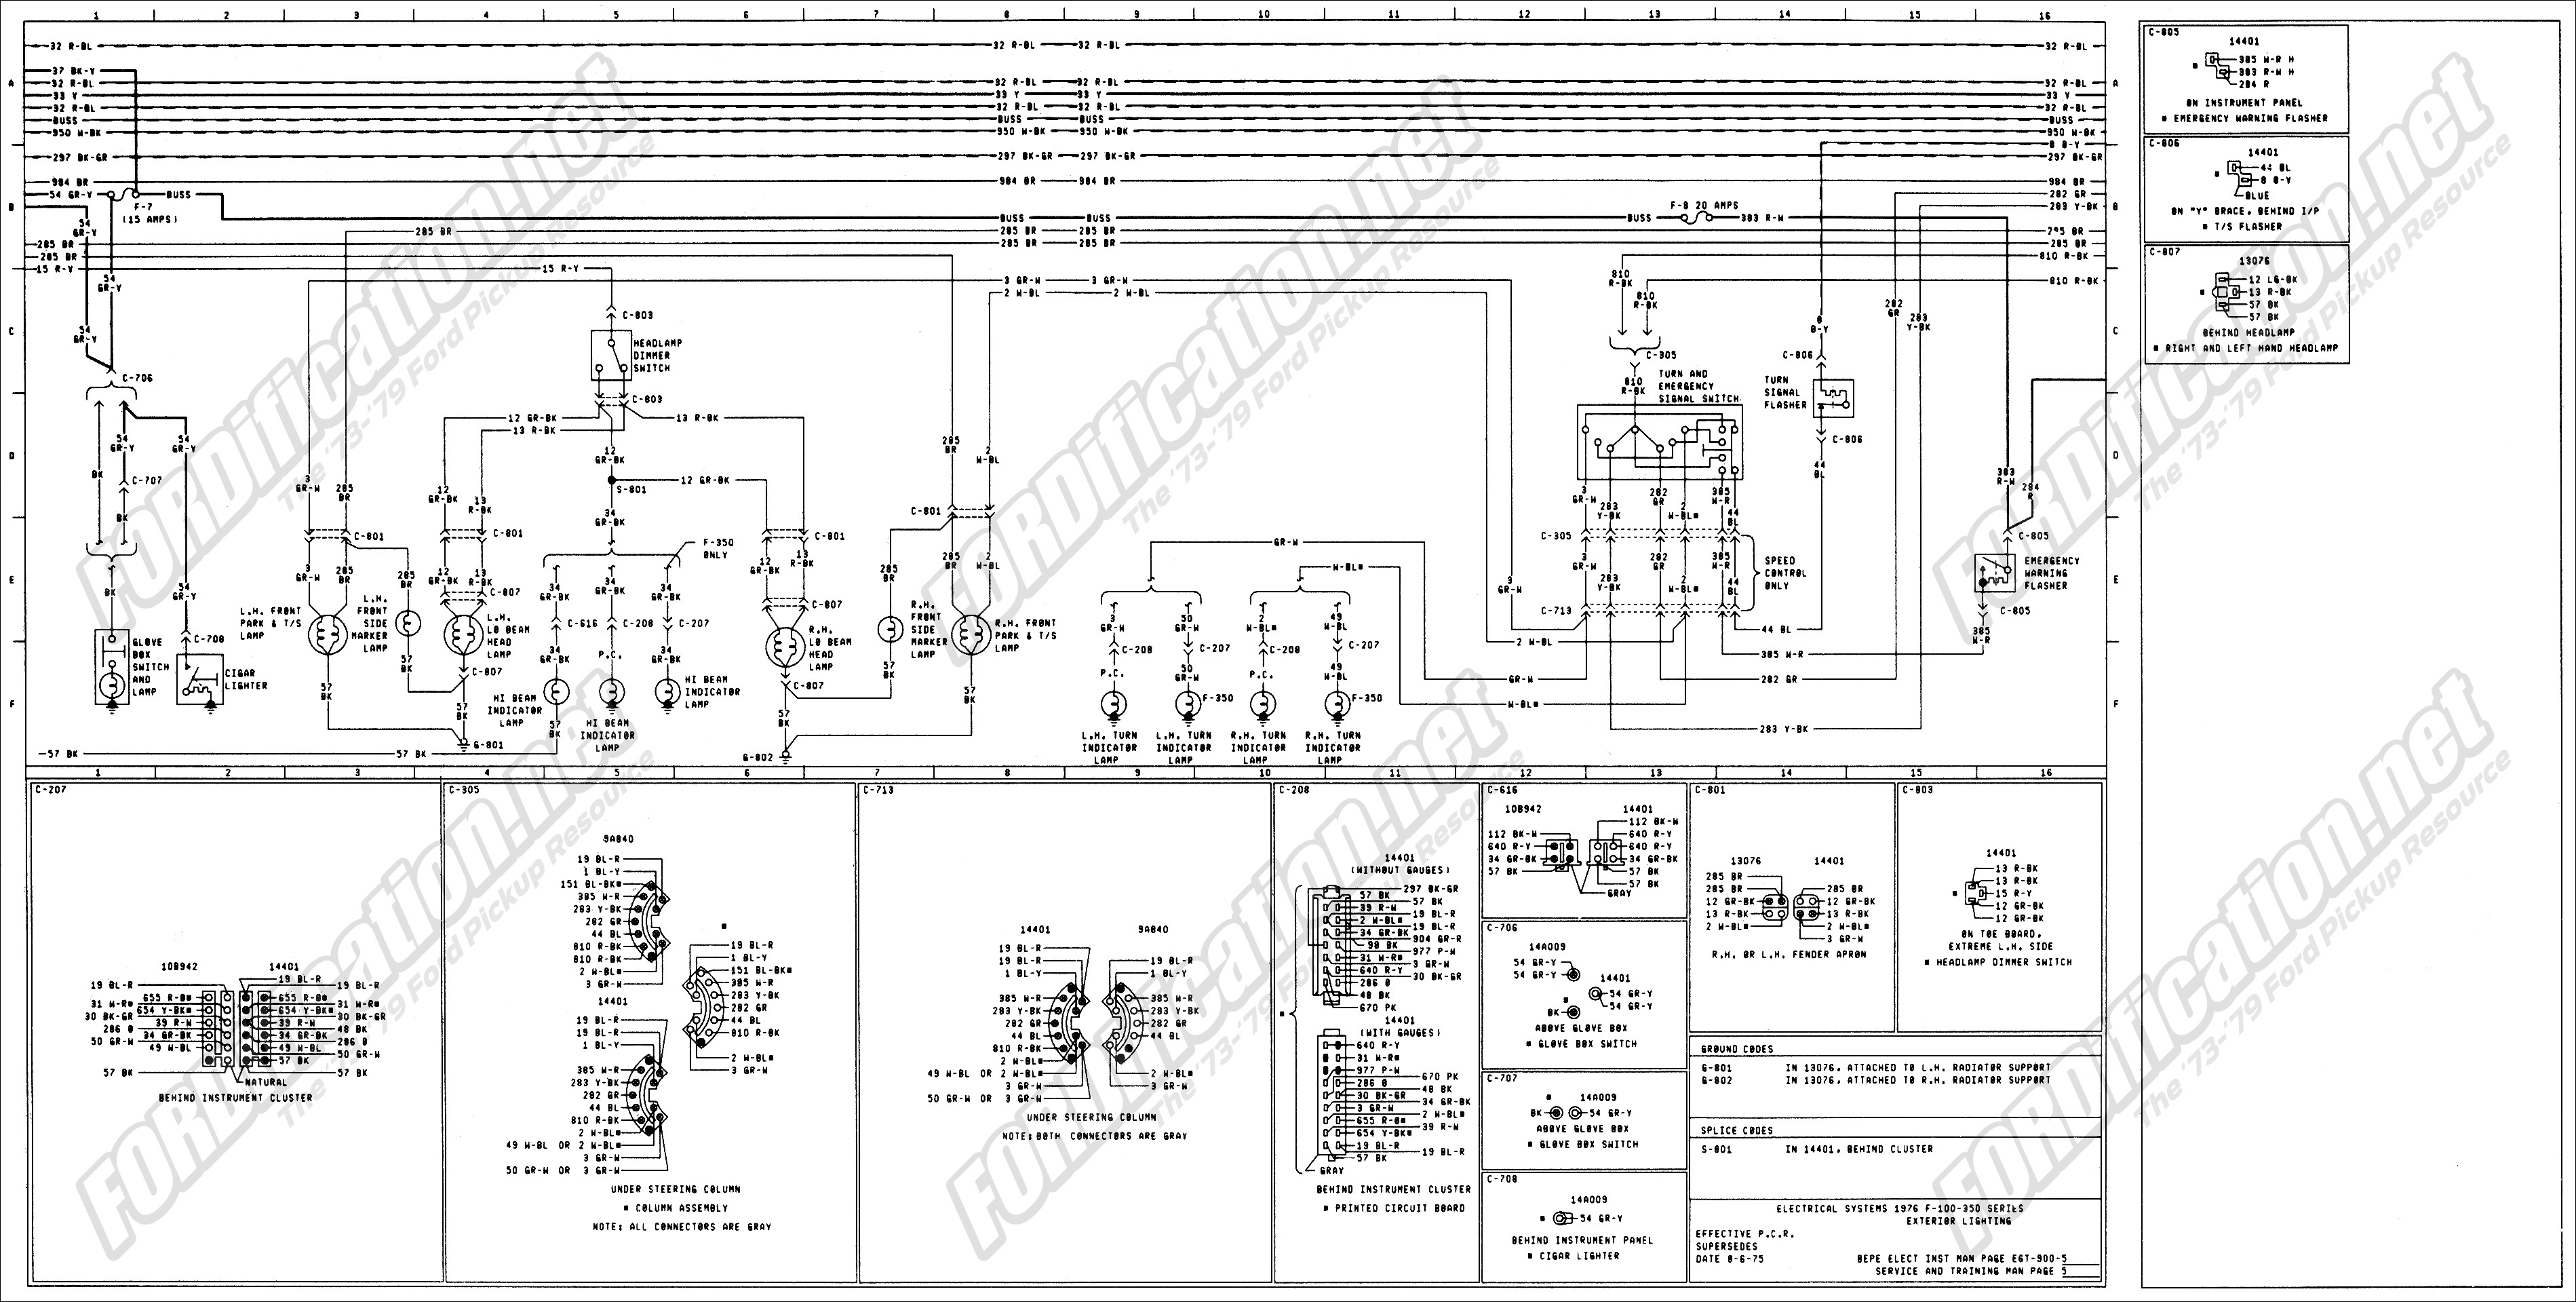 1977 ford f150 wiring harness 1 wiring diagram source1977 ford wiring harness diagram data schema1977 ford wiring harness wiring diagram m6 1977 ford f100